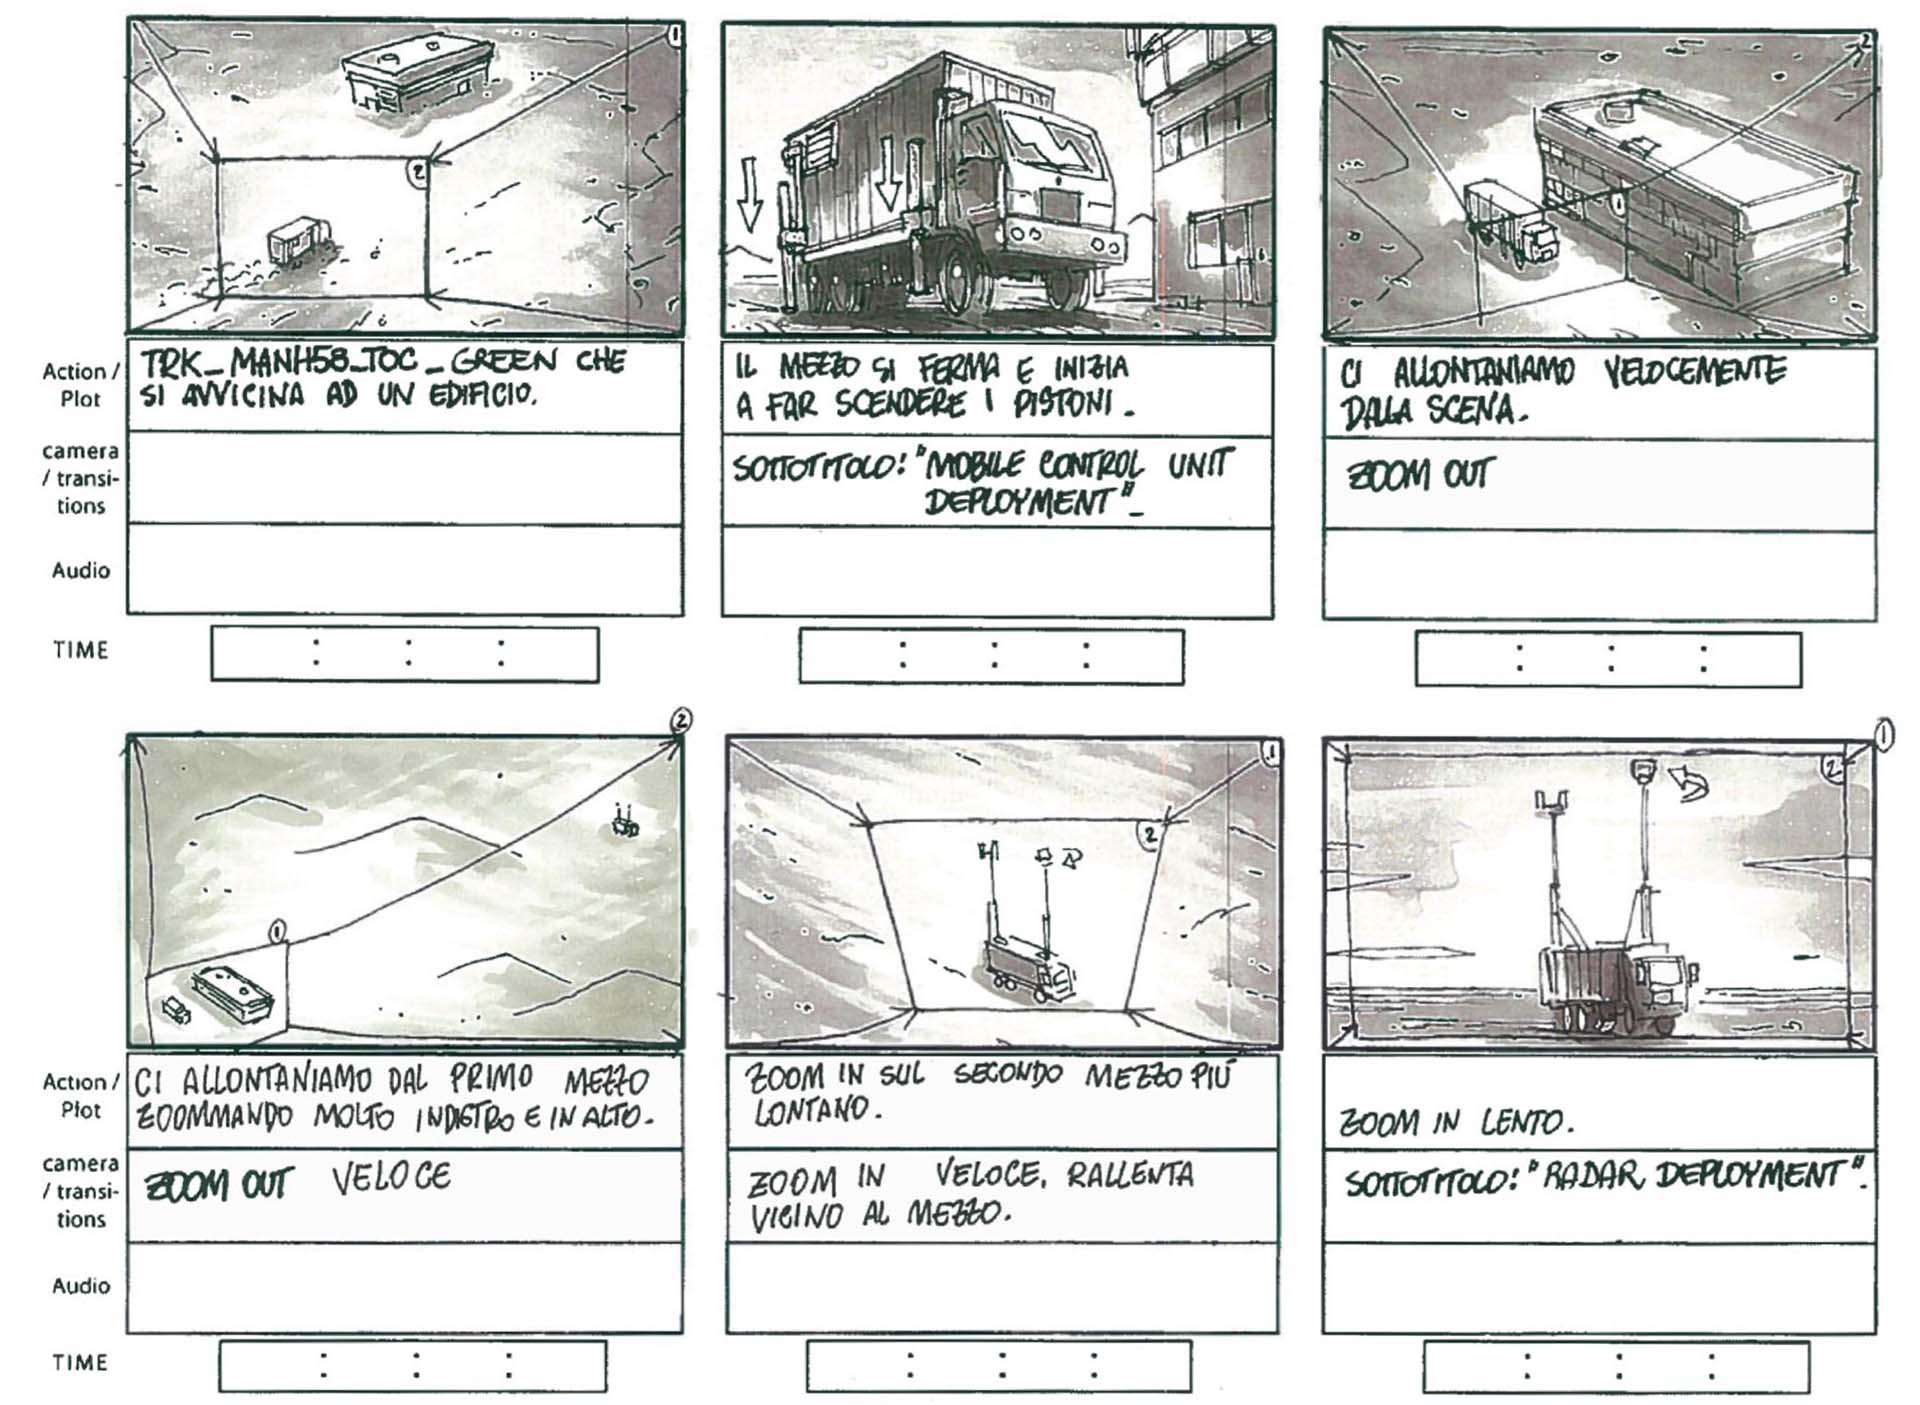 Storyboard for military defence video in a european environment